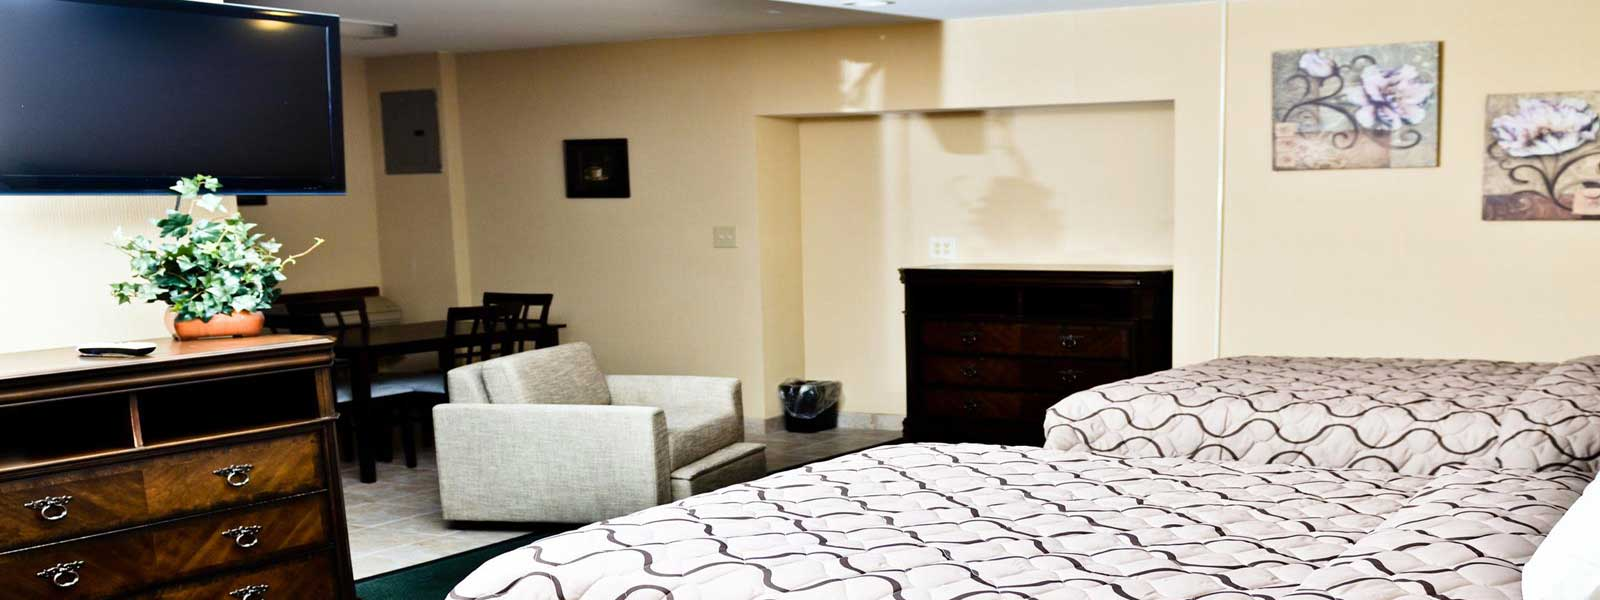 Pacer Inn and Suites Affordable Lodging in Delaware Ohio Clean Comfortable Rooms Newly Remodeled Close to Downtown